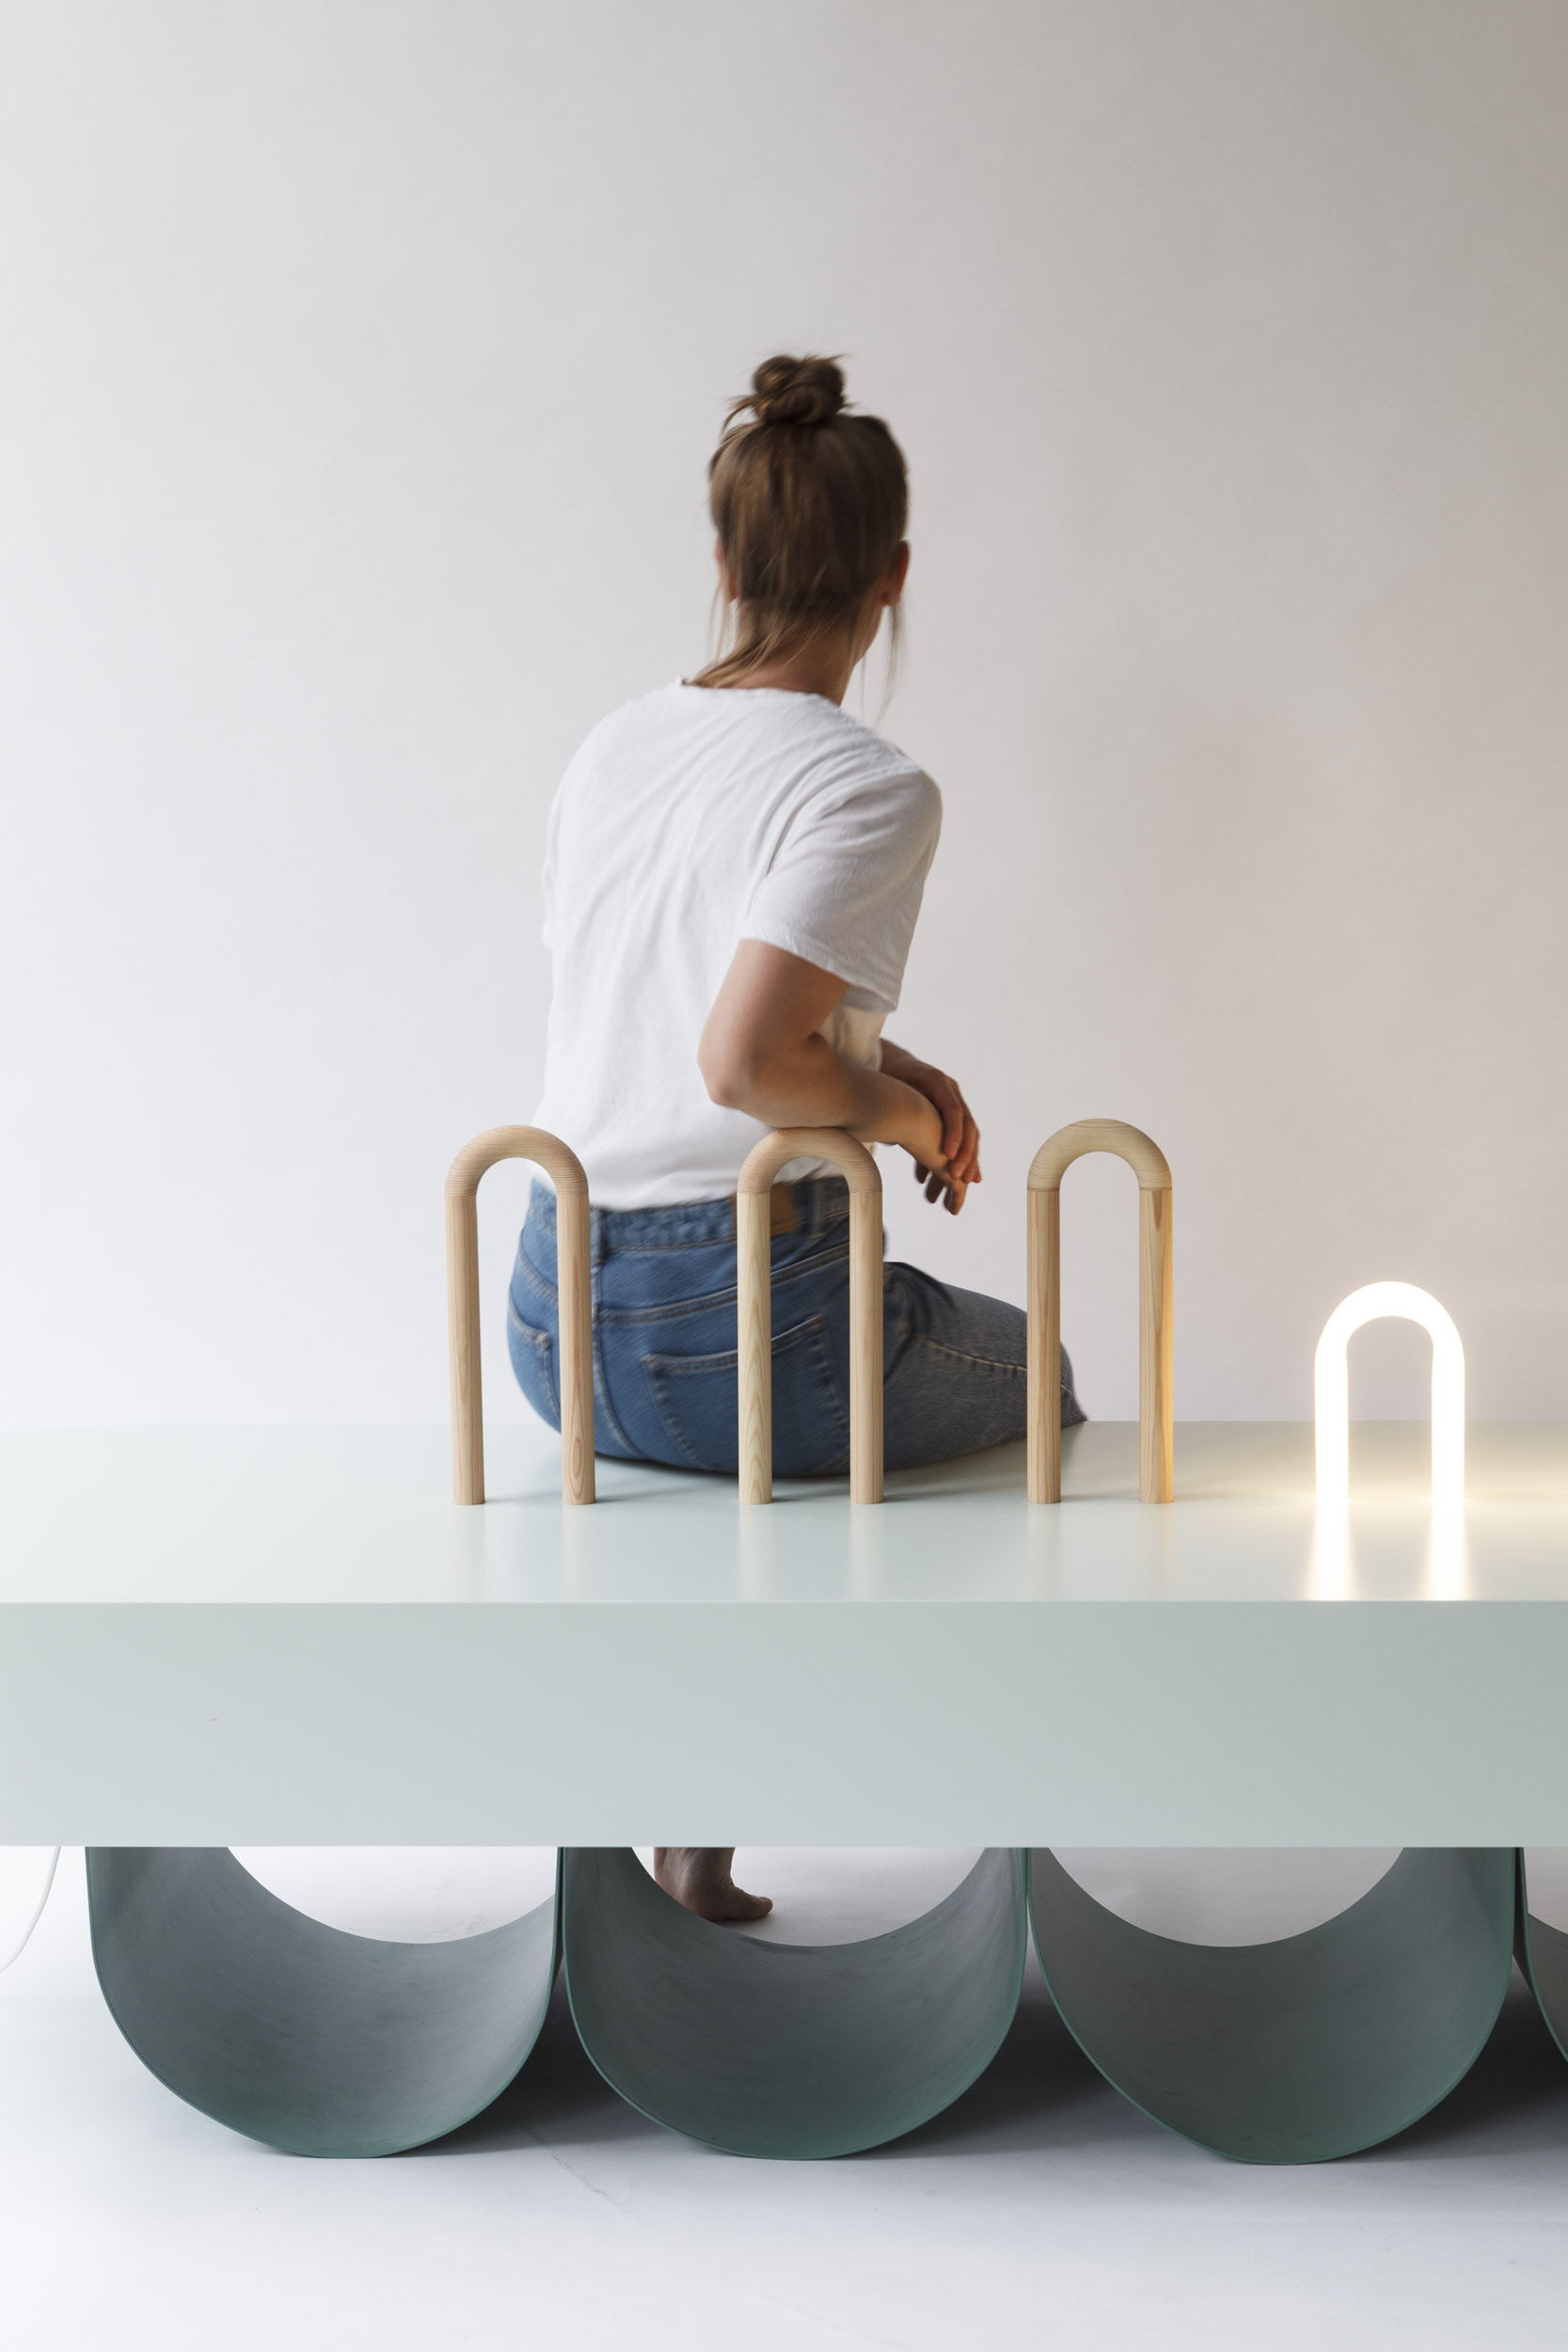 BENCH BOW,  WOOD, ALUMINIUM, GLASS, LACQUERED MDF  204 x 70 x 74cm